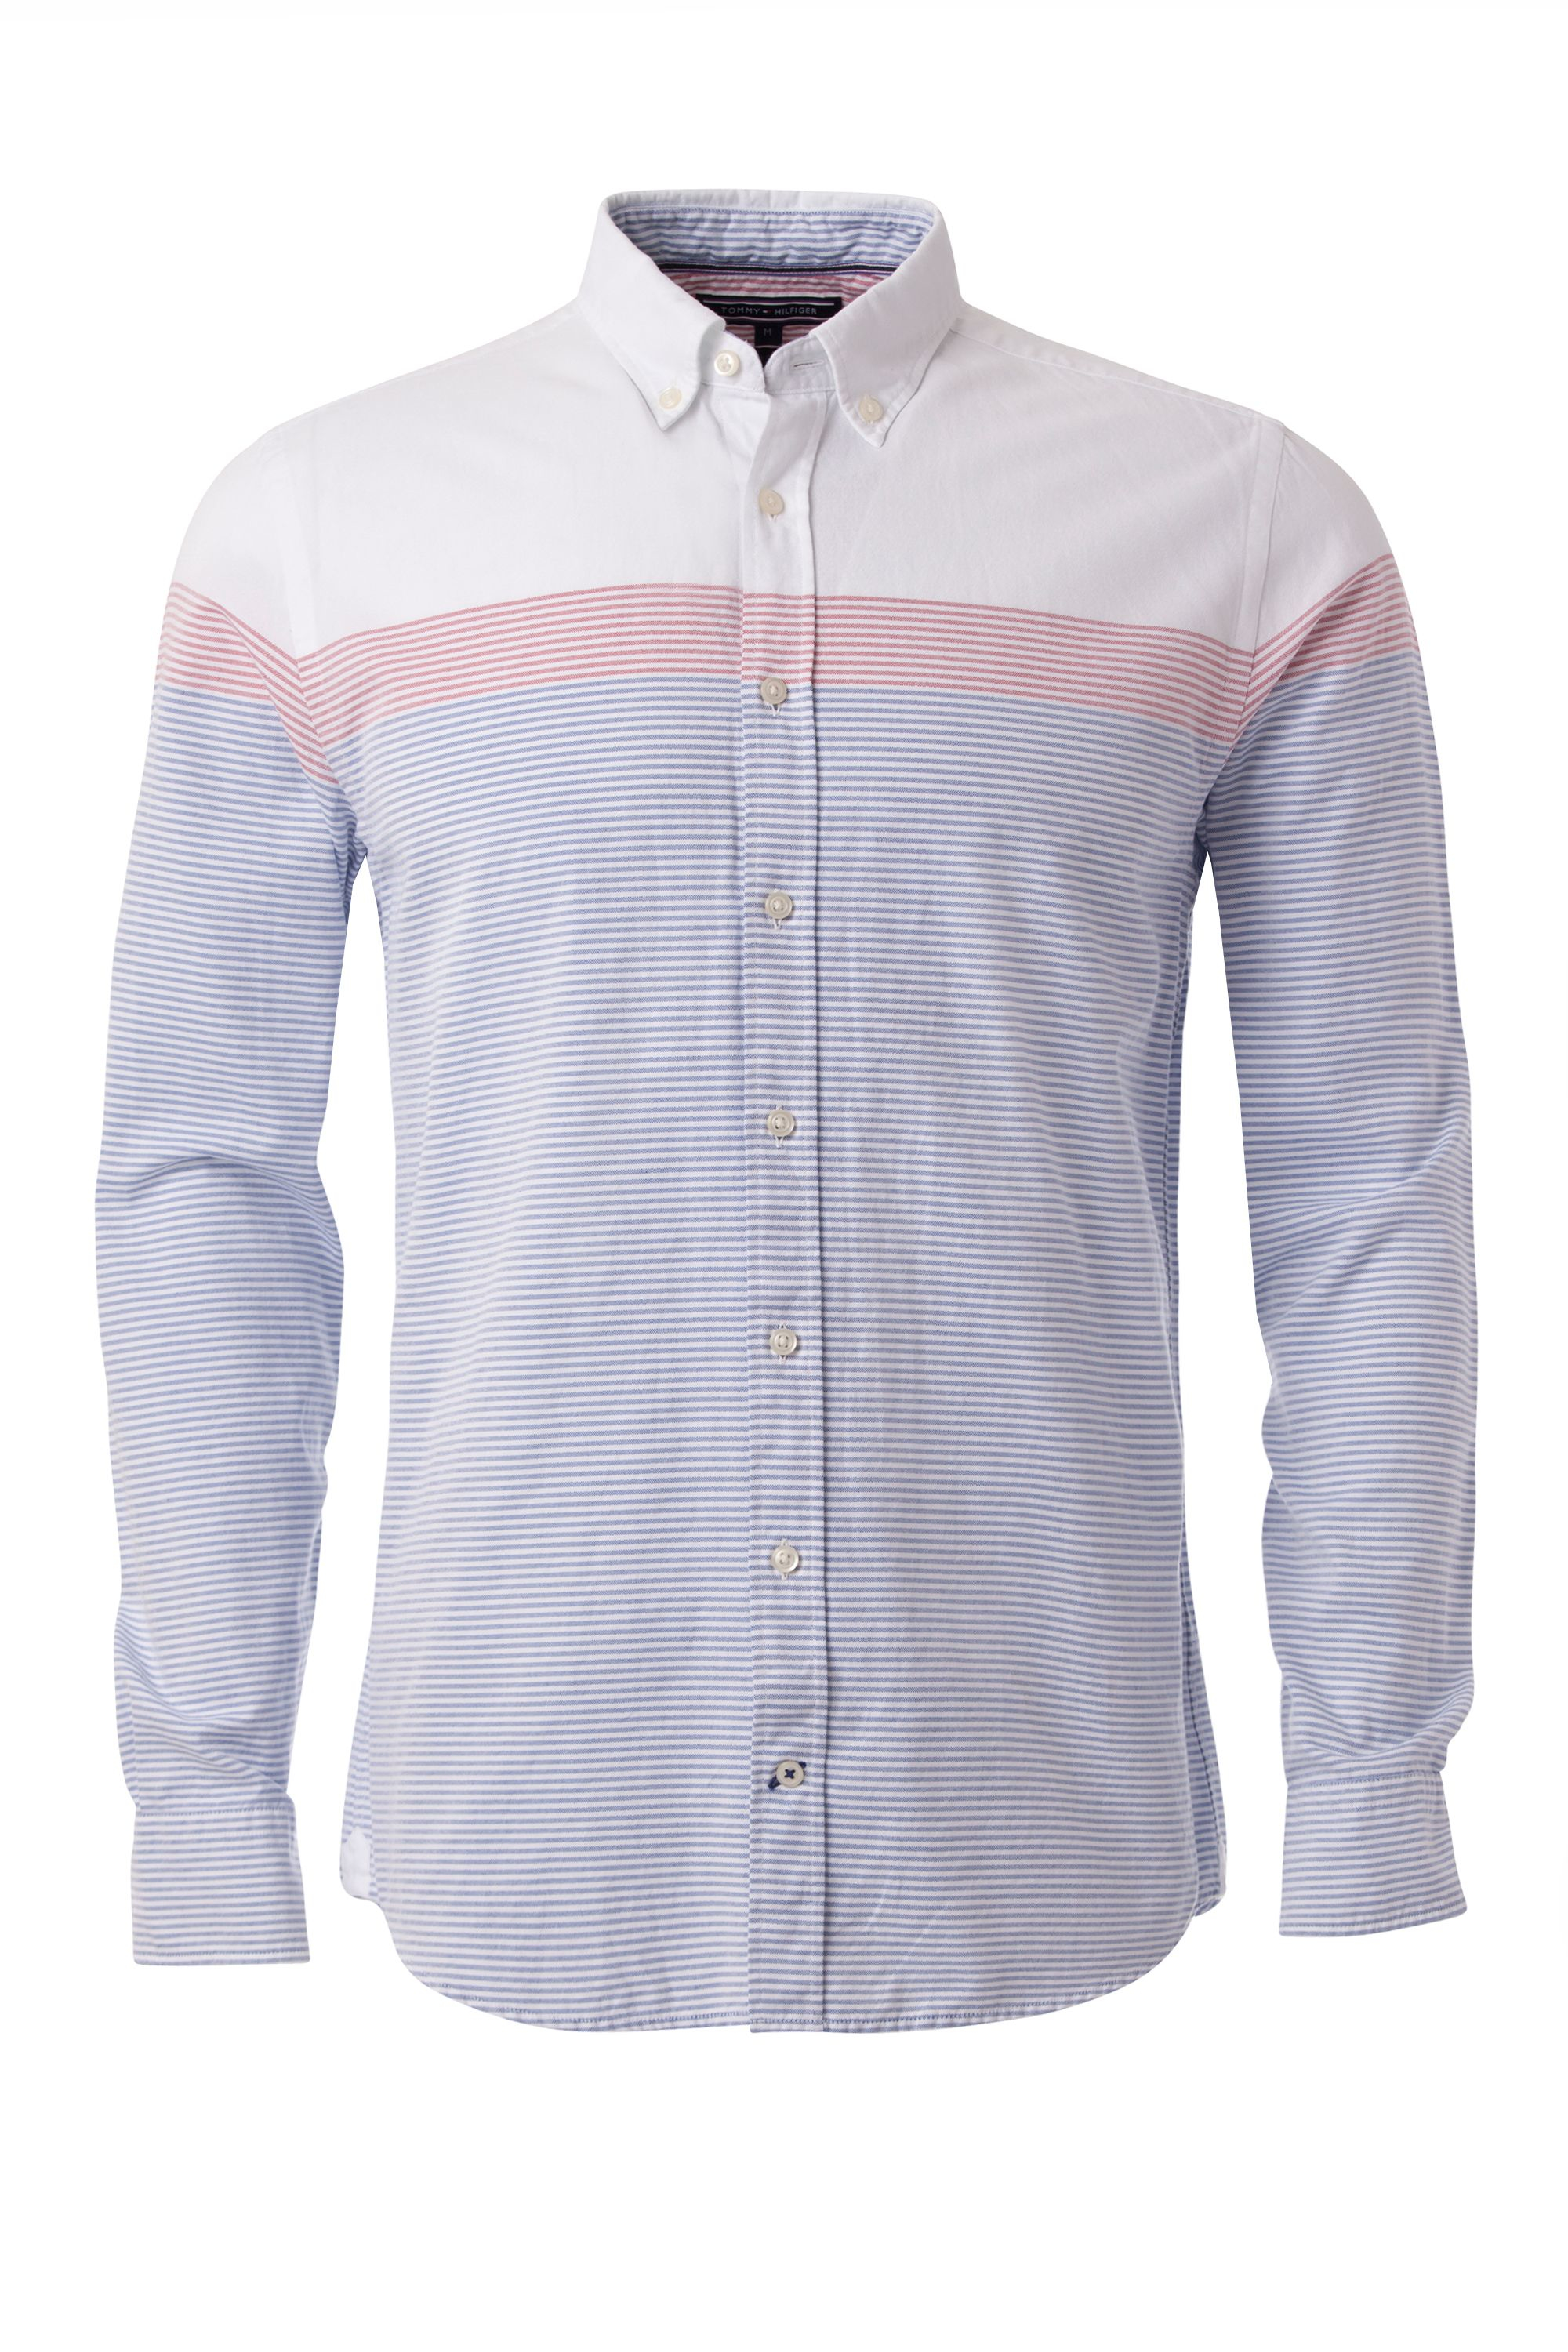 Lyst tommy hilfiger engineered ithaca stripe shirt in for Ithaca t shirt printing